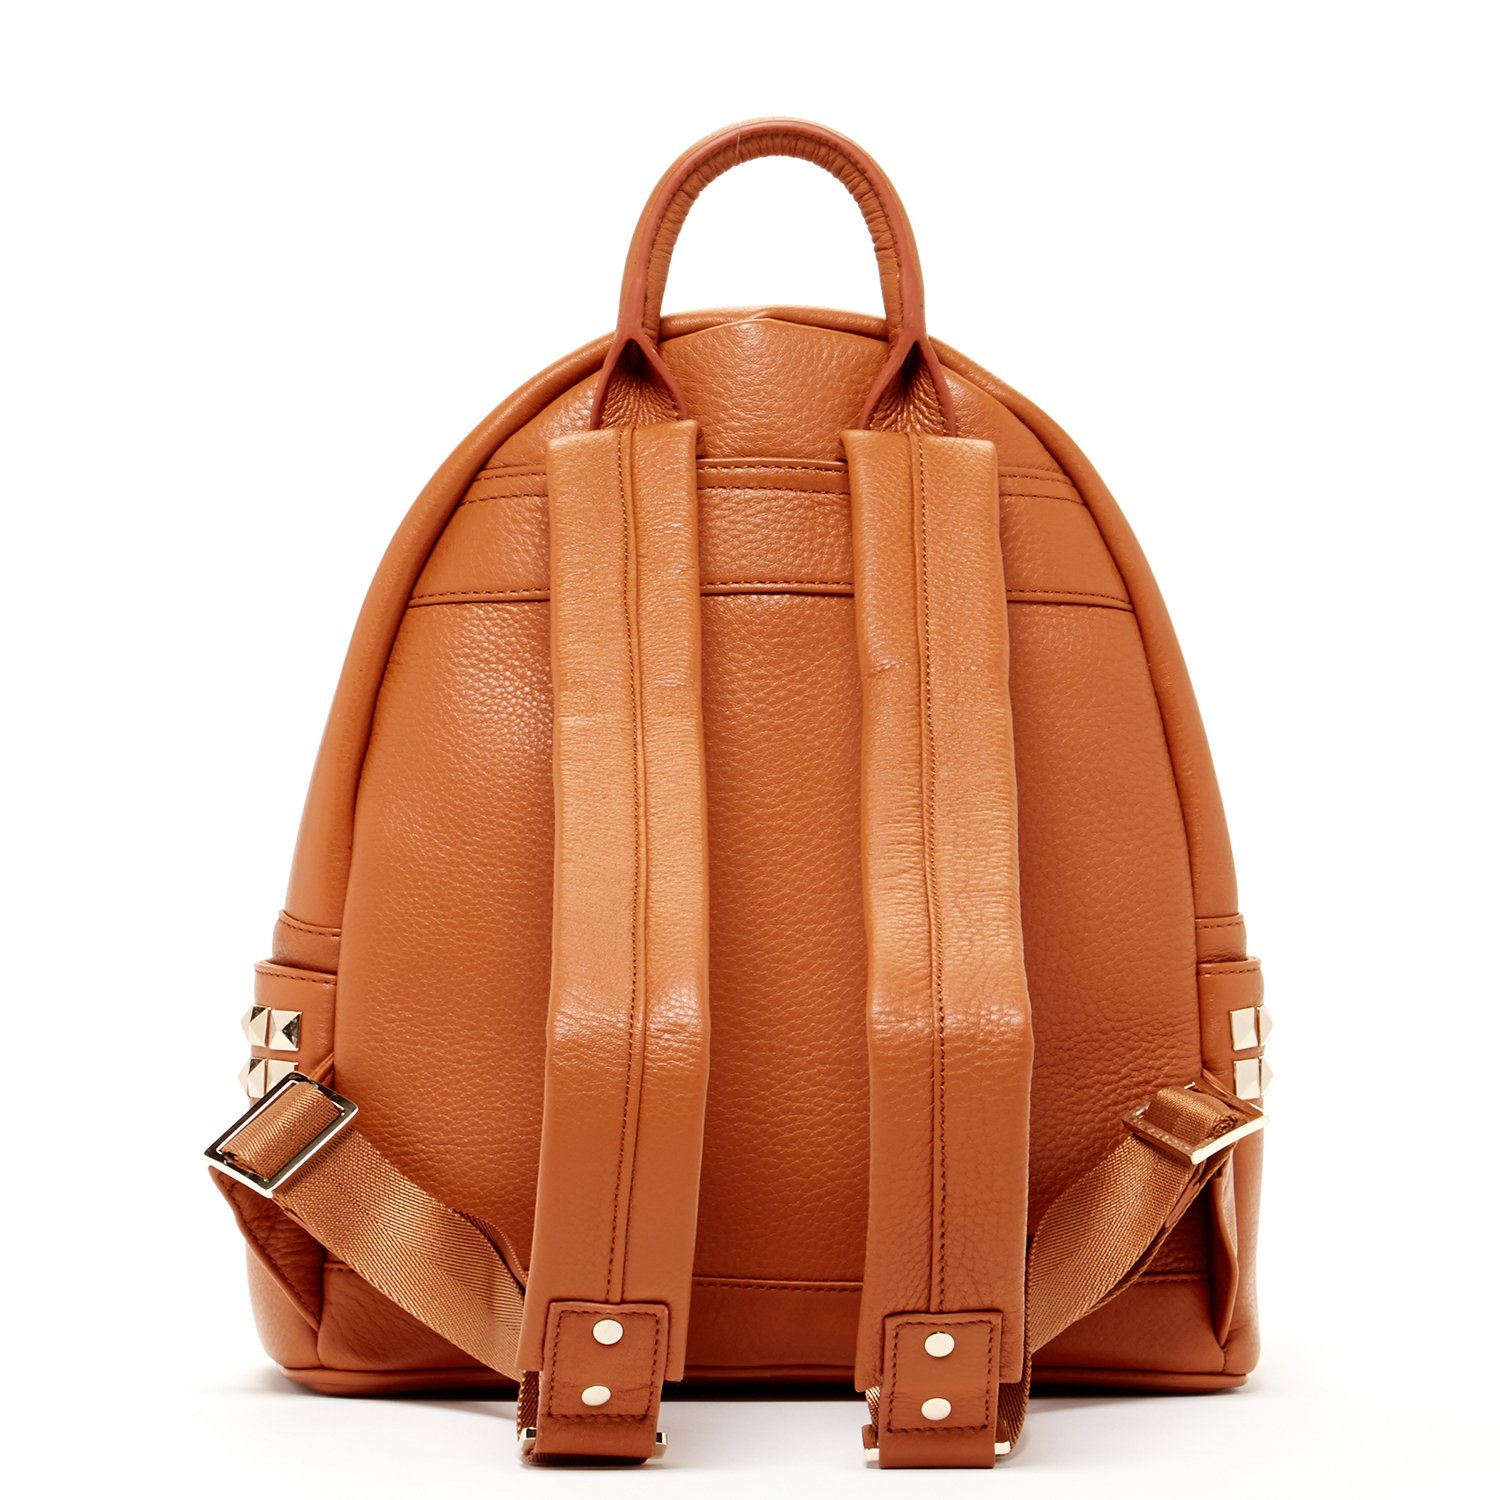 SUSU Brown Pebble Leather Backpack Bags For Women Cute Designer Handbags With Studs and Front Pocket Travel Fashion Backpacks Purses With Side Pockets Quality Rucksack Girlfriend or Wife Birthday Gift by SUSU (Image #3)